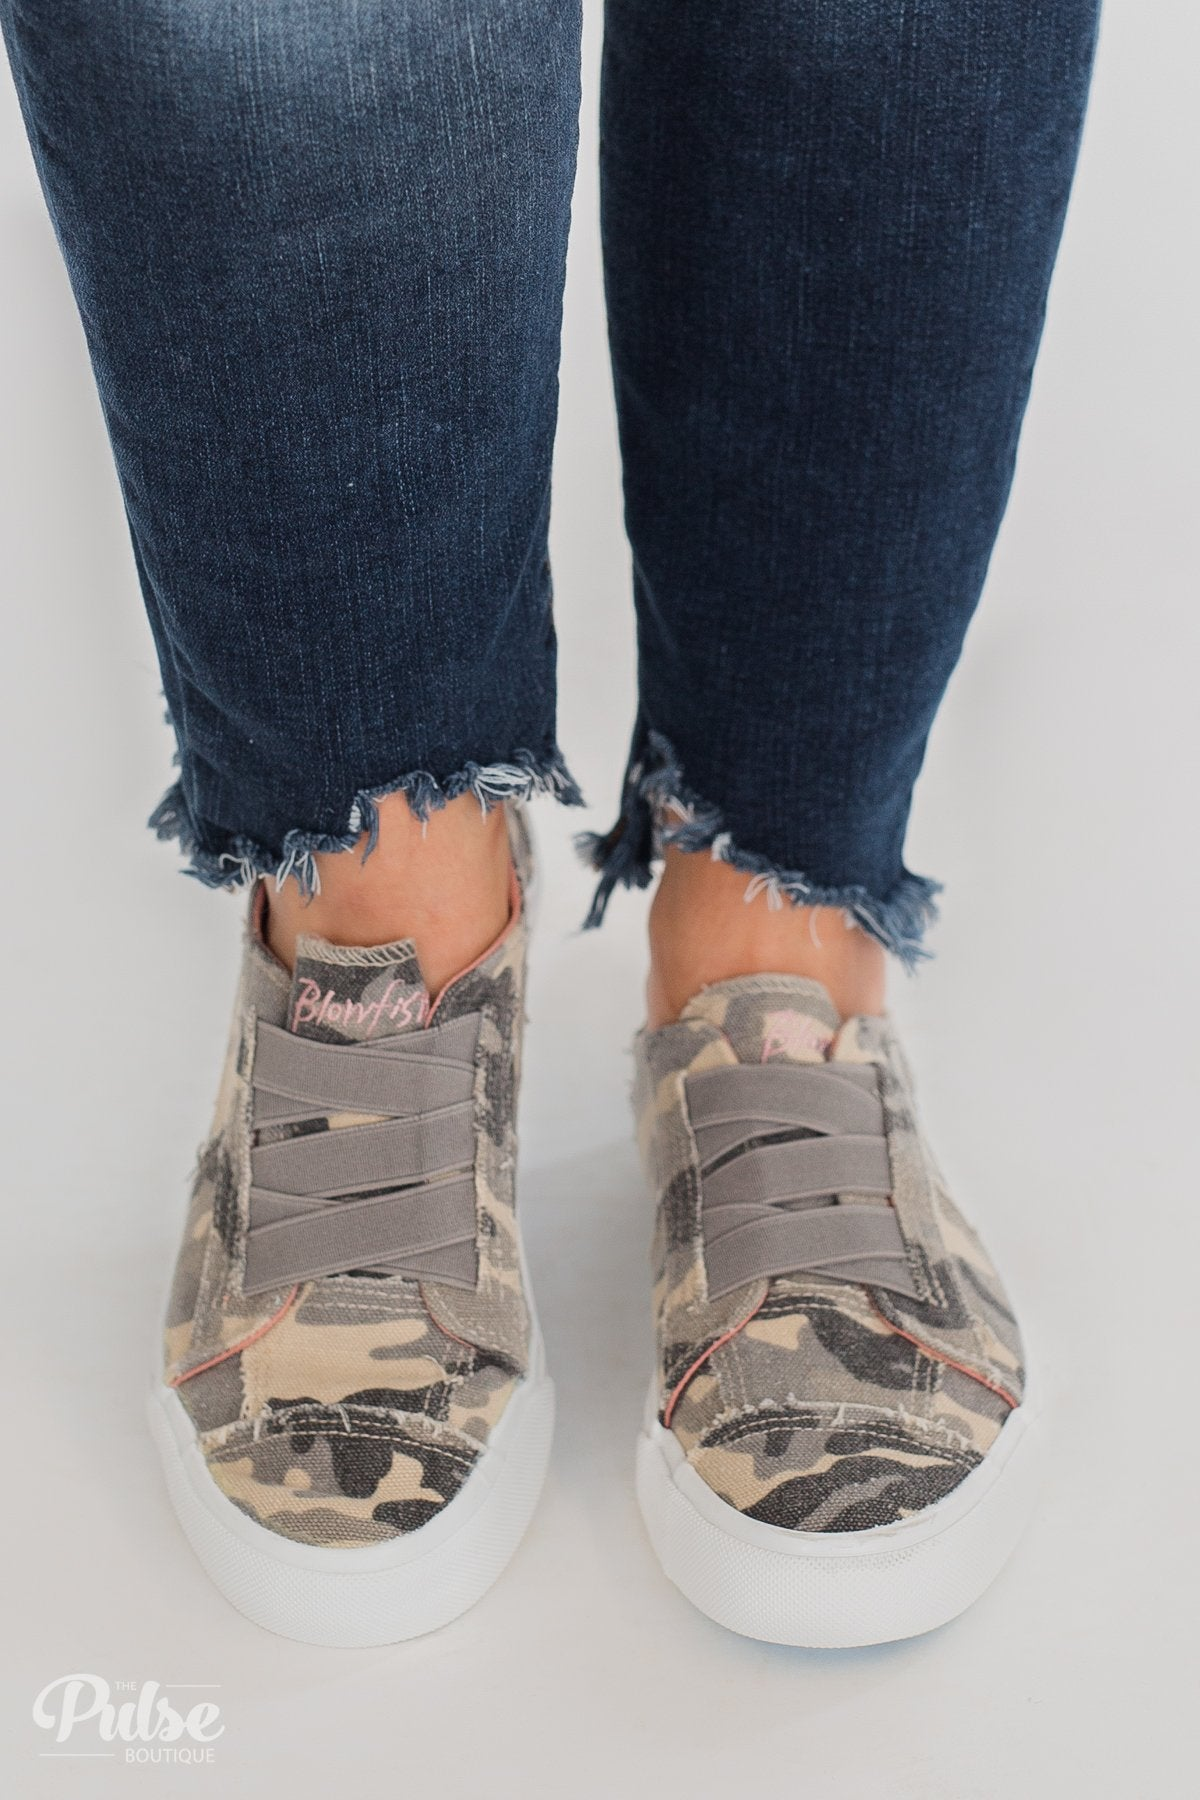 242d9f53a9b6d Blowfish Marley Sneakers- Gray Urban Camo – The Pulse Boutique